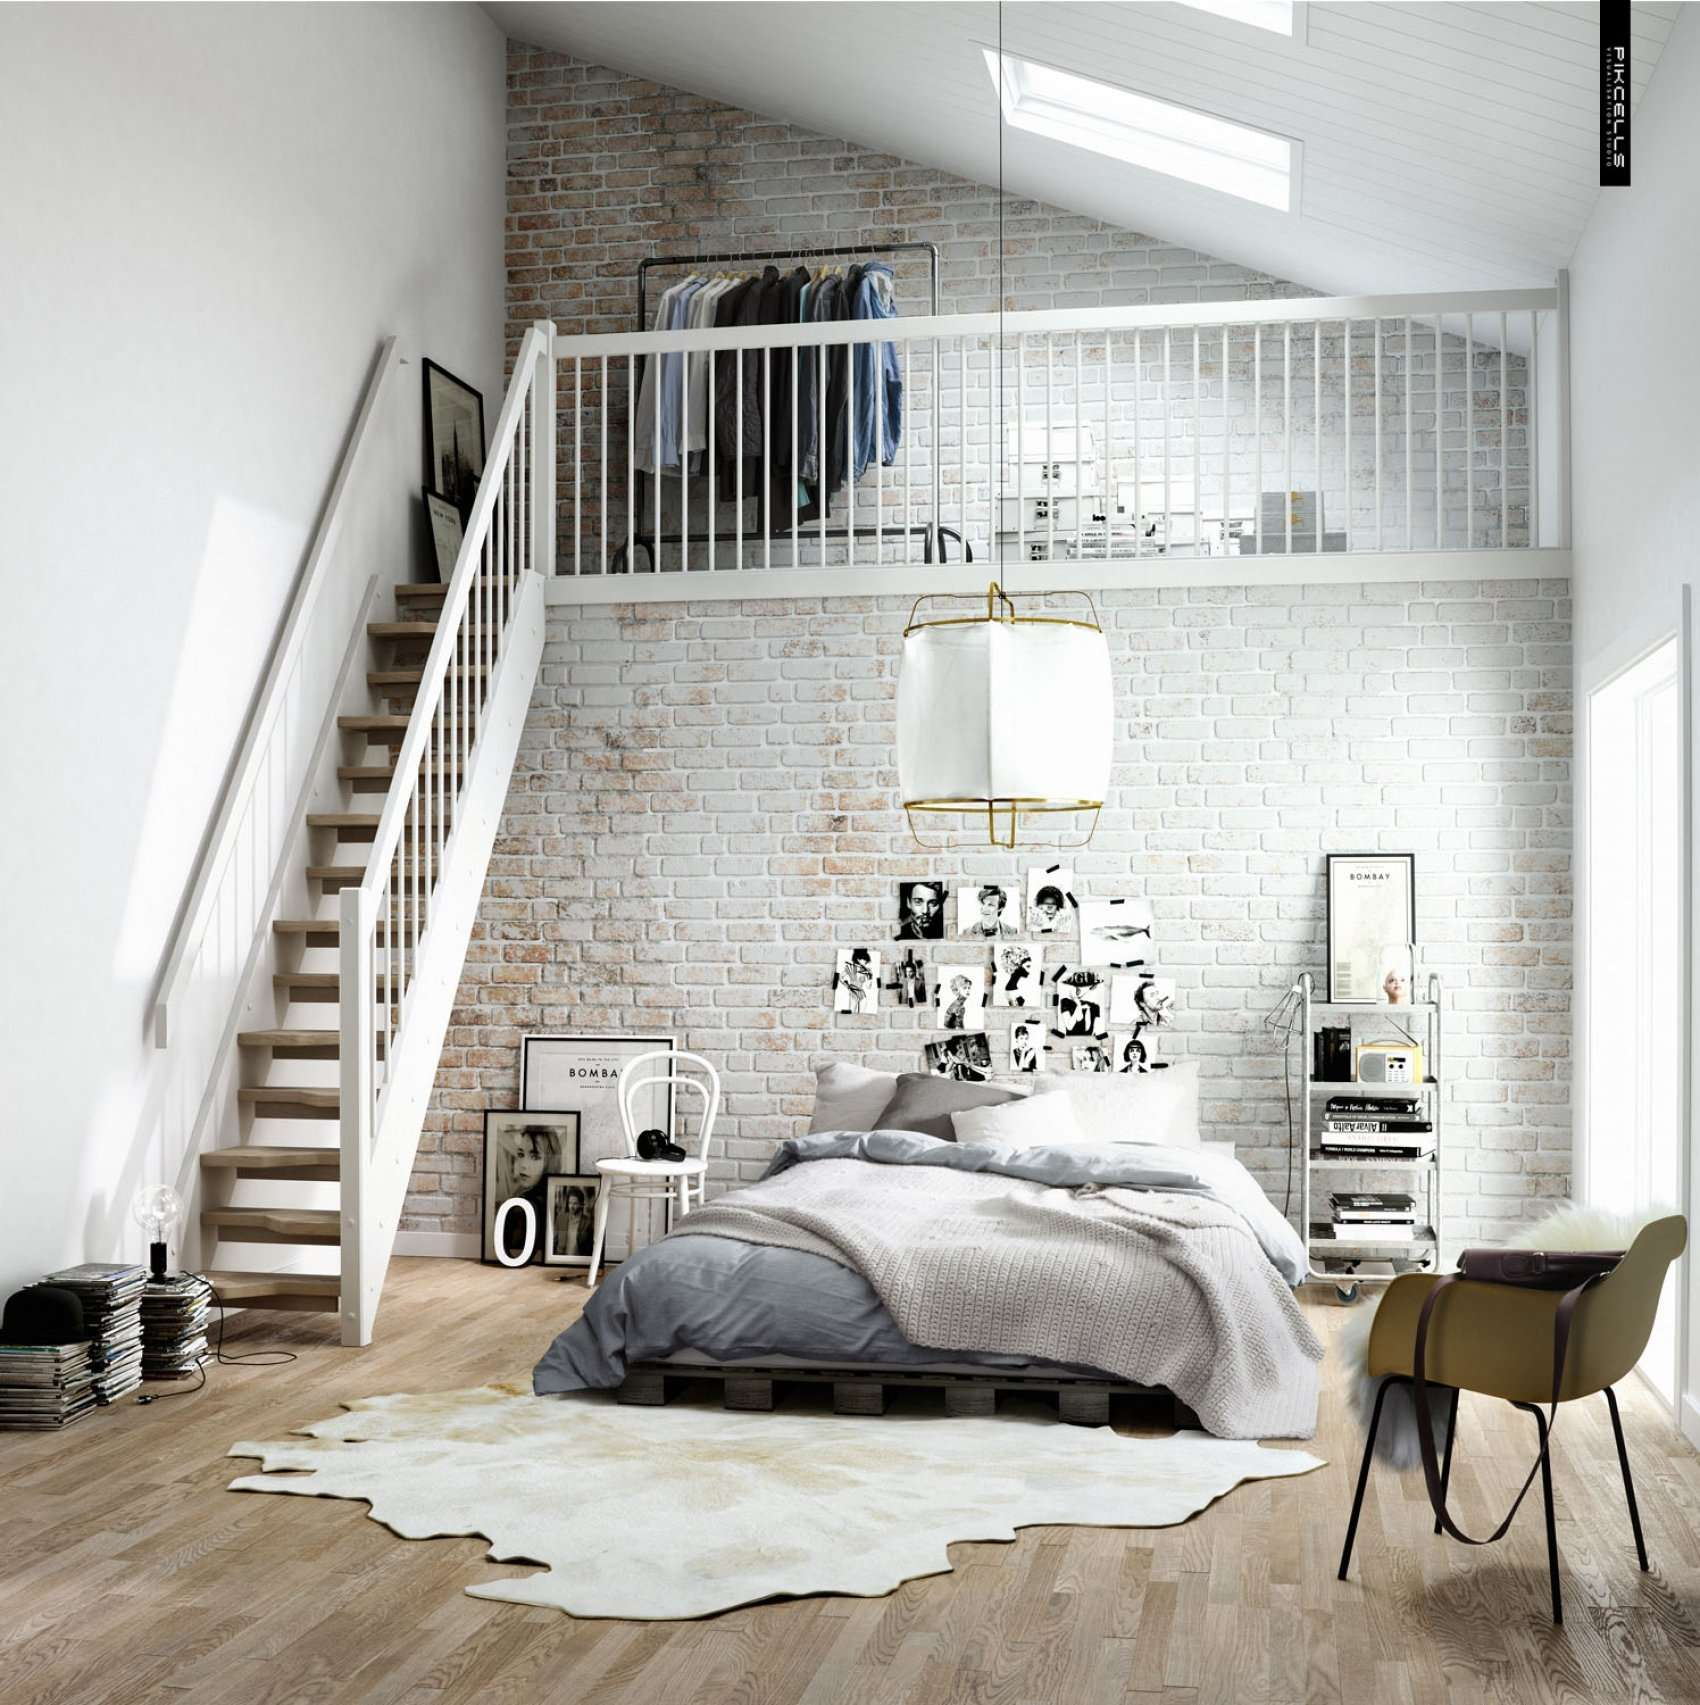 Unique Inspirations The Best Scandinavian Bedroom Design Ideas 3  Scandinavian Bedroom Design Ideas Unique Inspirations: